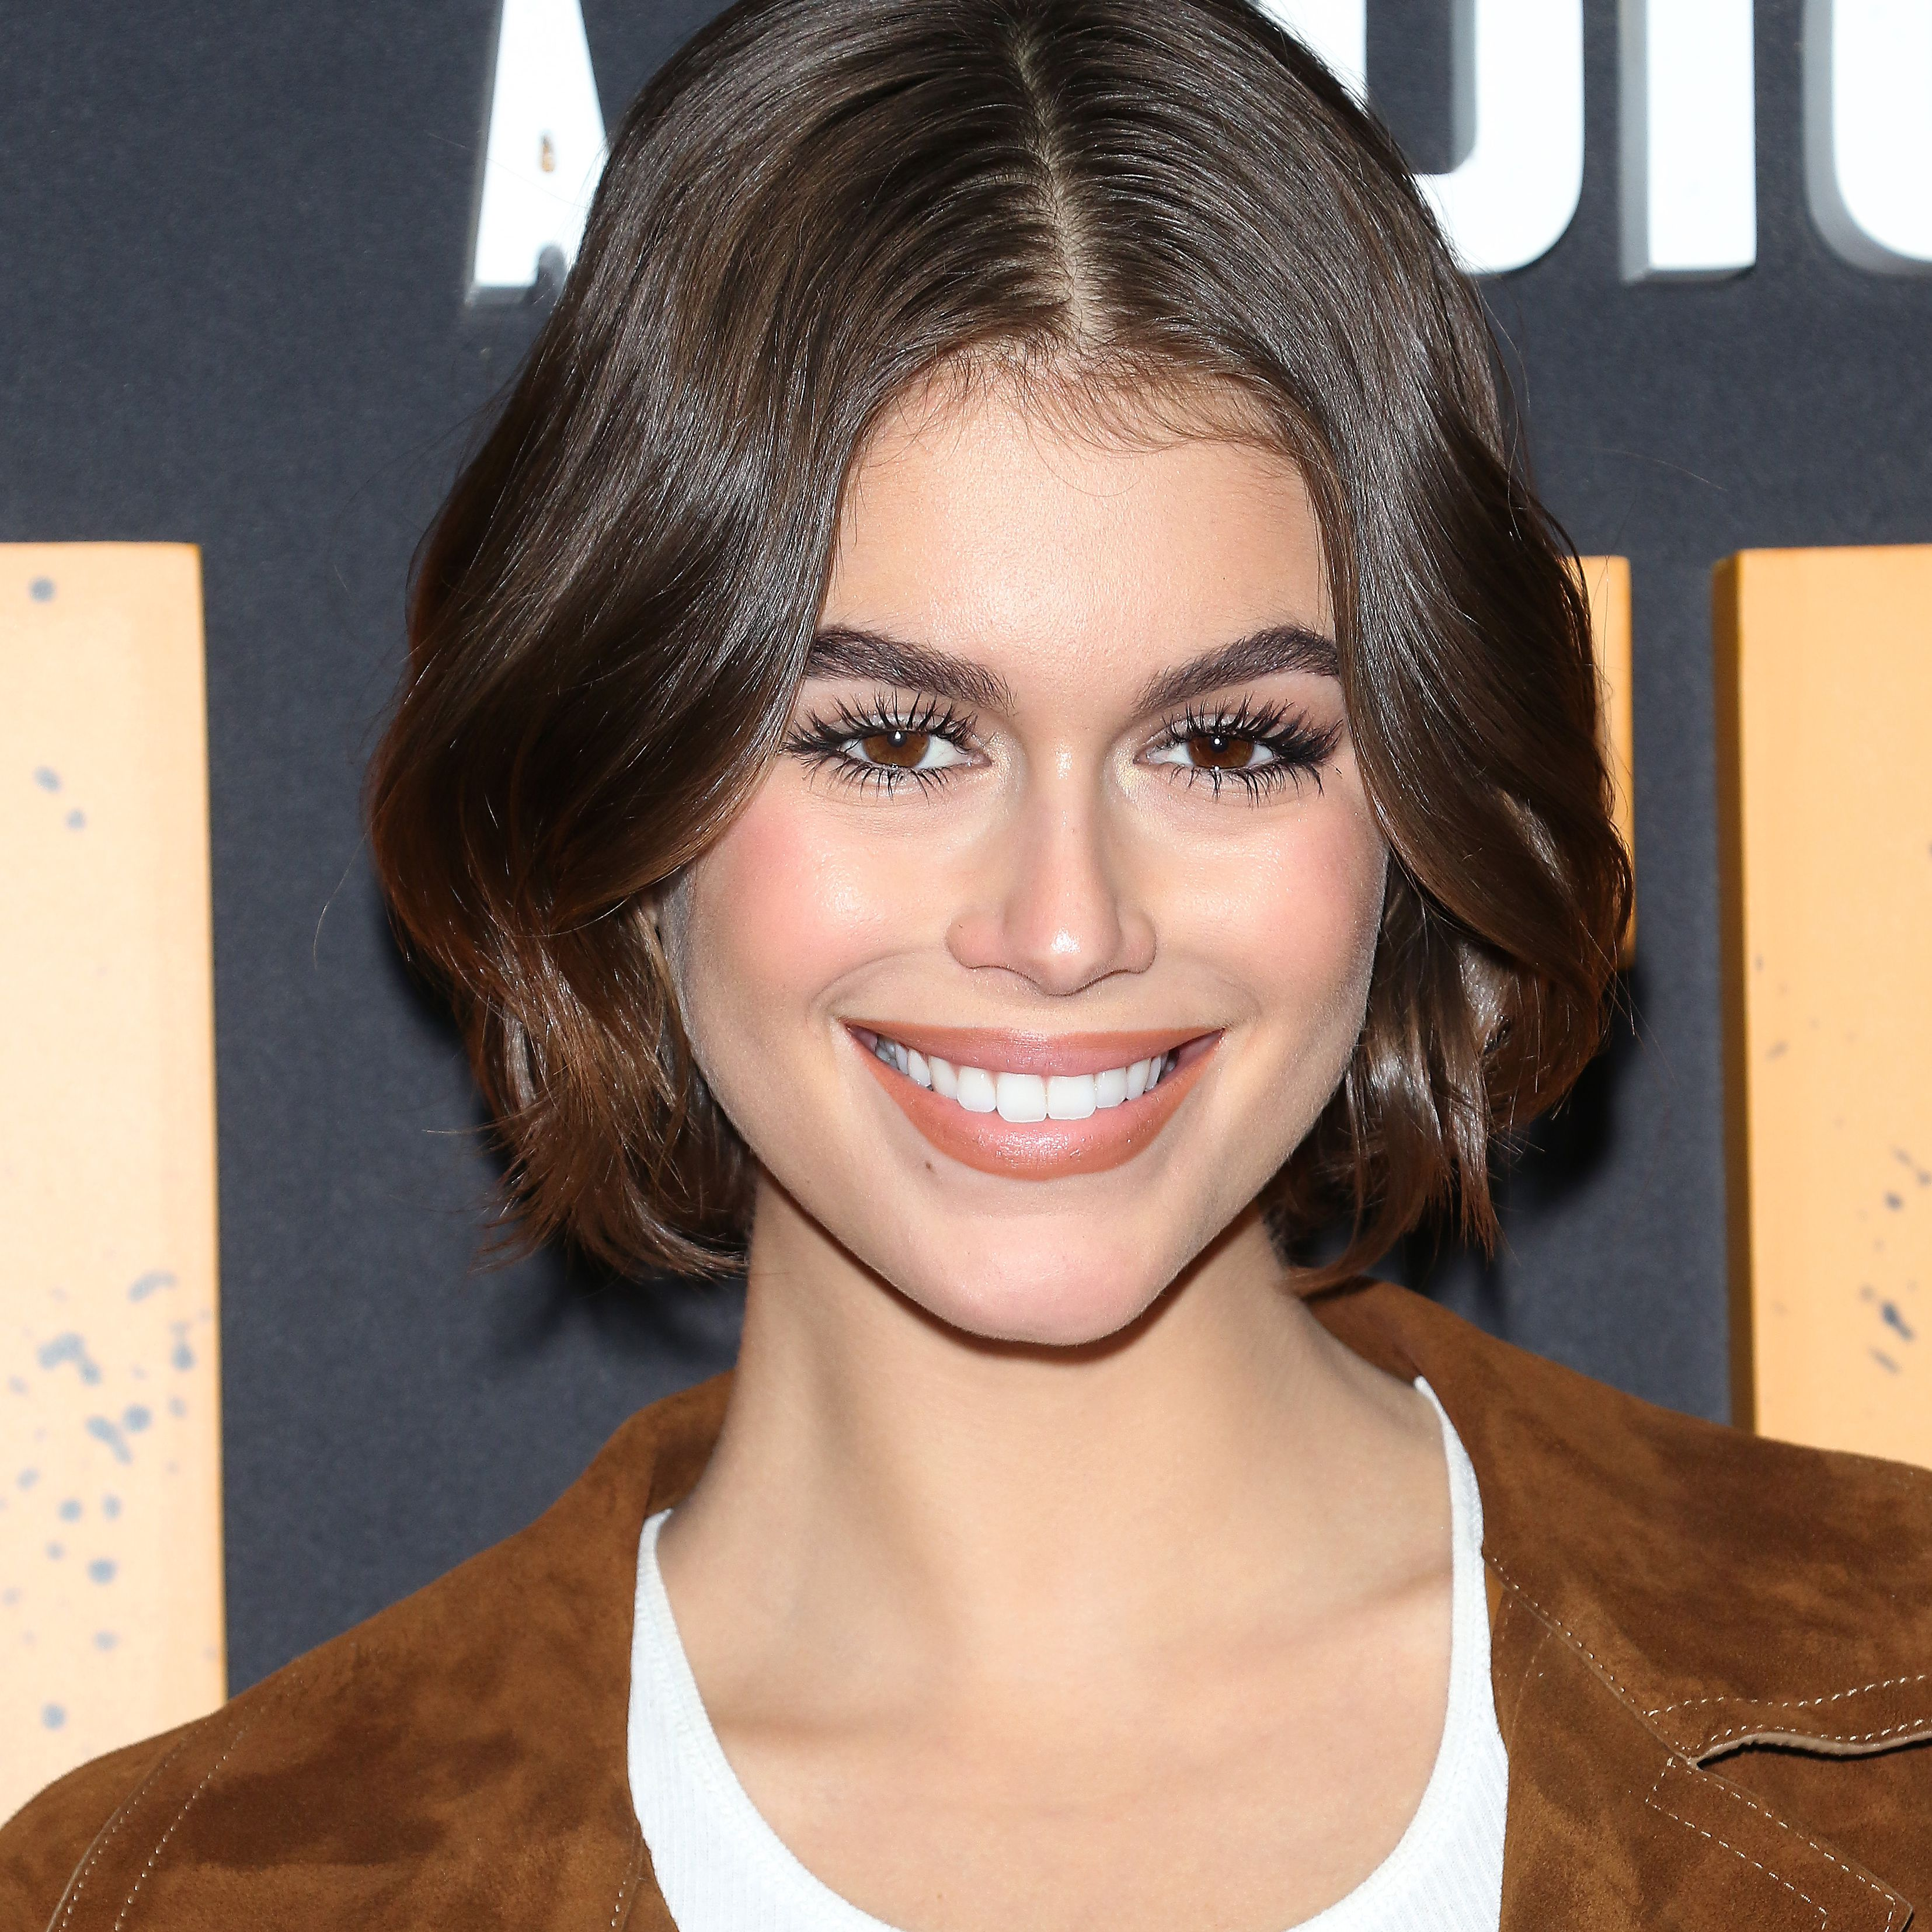 The 11 Best Short Haircuts for Thick Hair